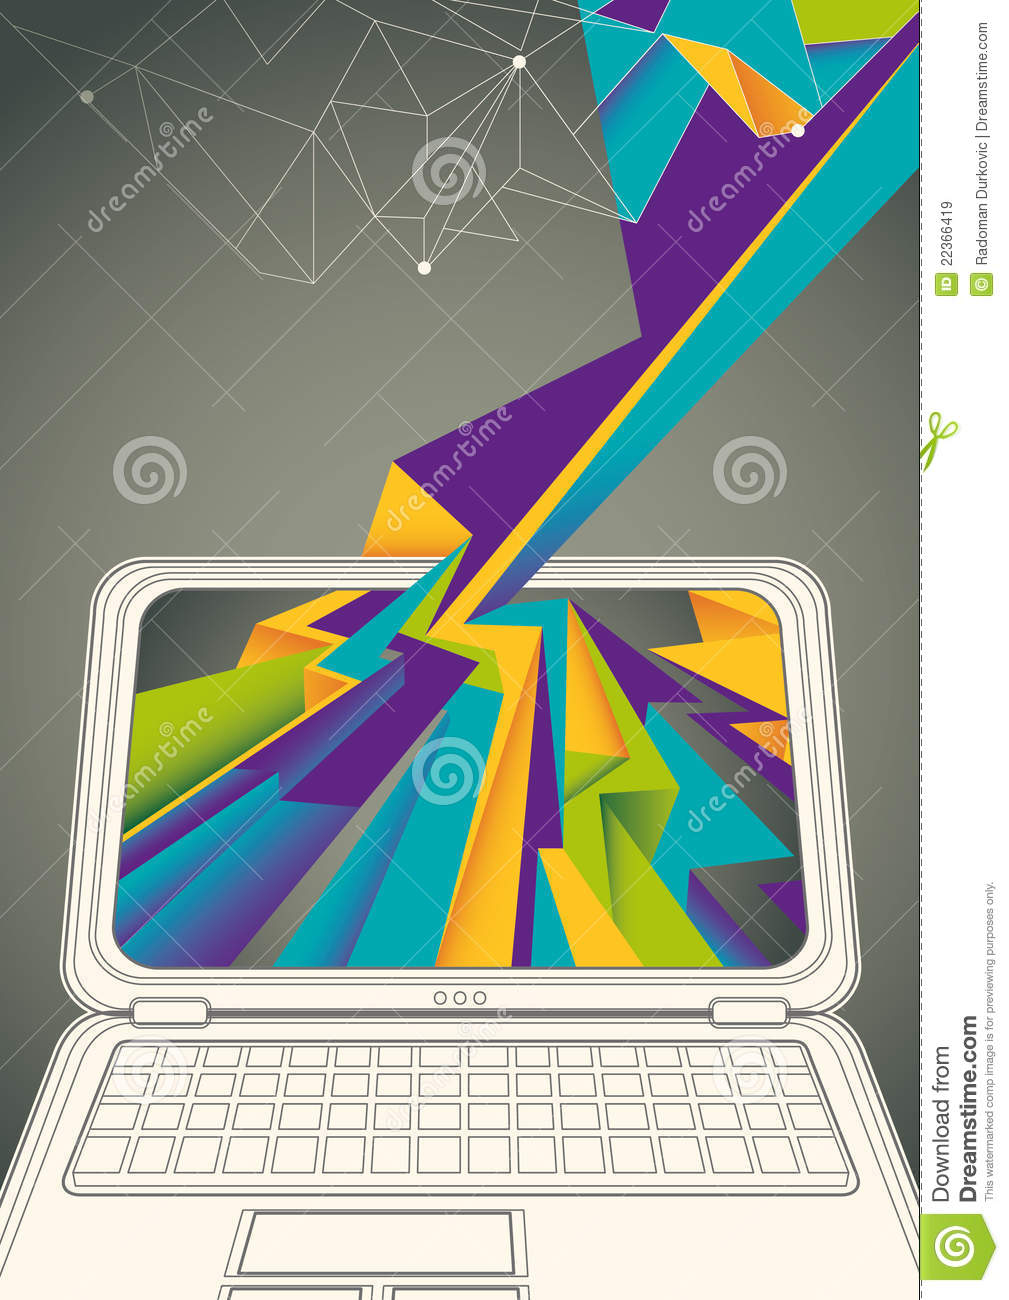 Technology Poster With Laptop. Royalty Free Stock Images - Image ...